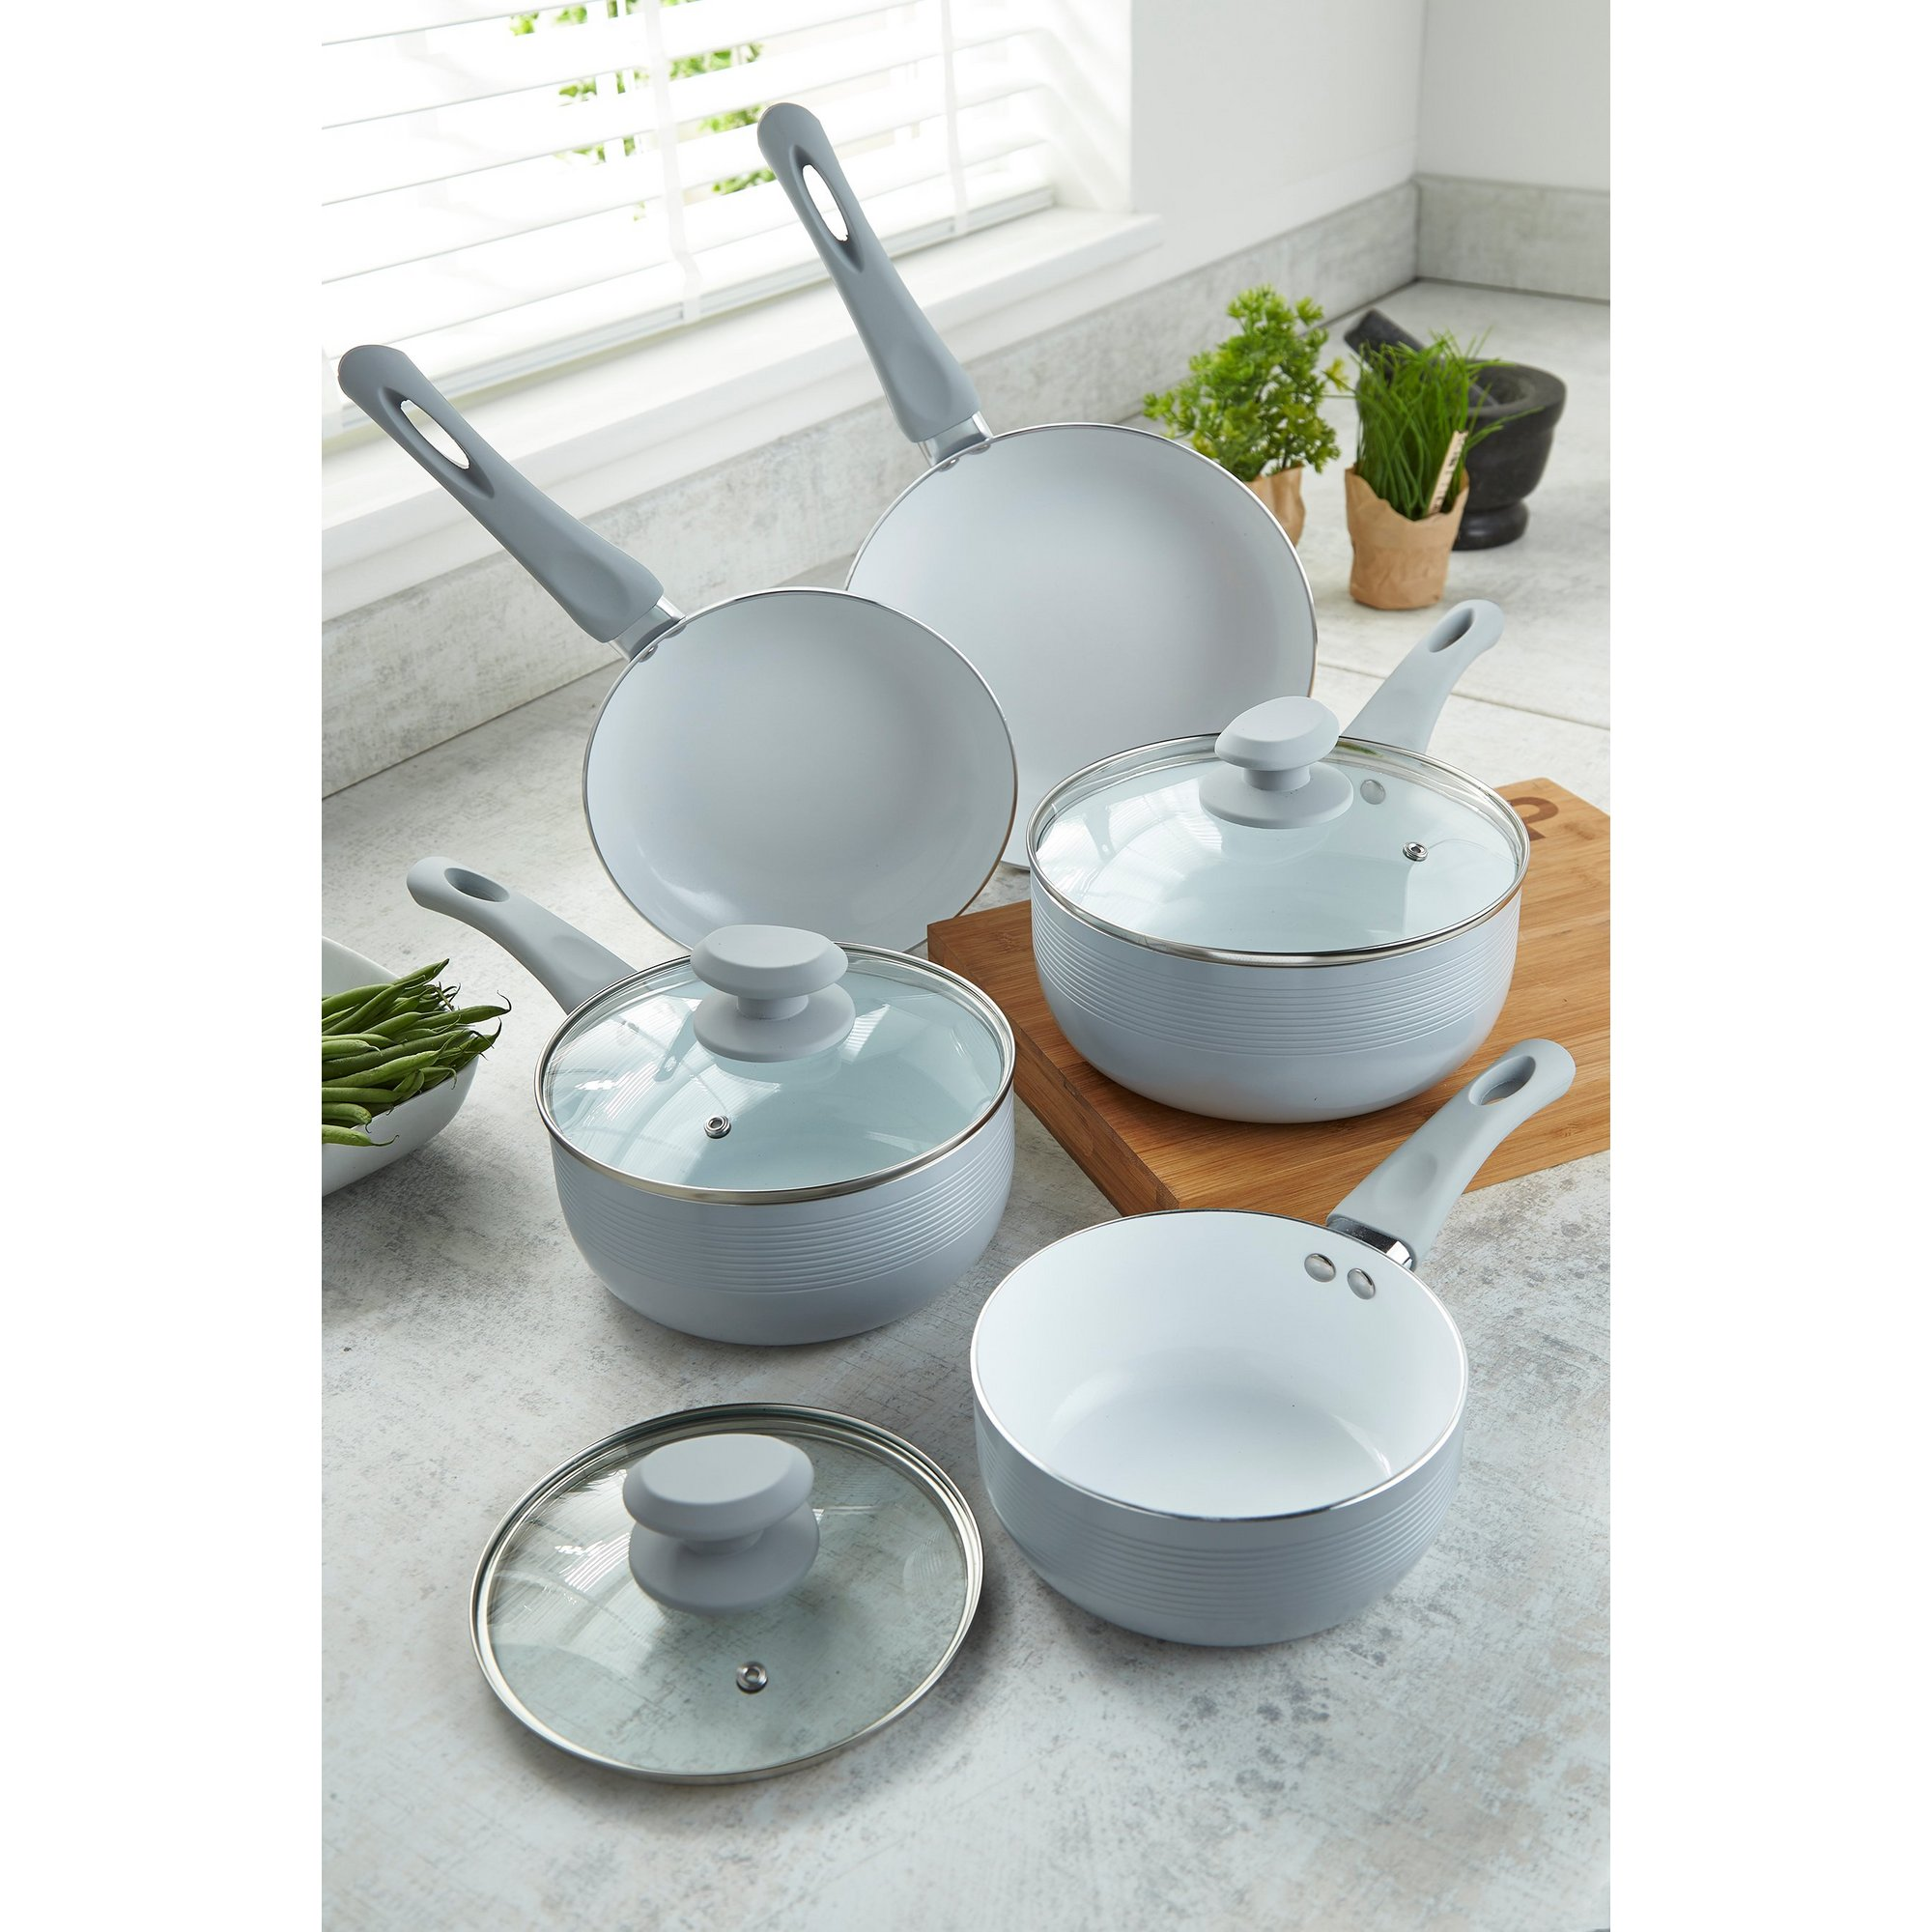 Image of 5-Piece Aluminium Ribbed Pan Set